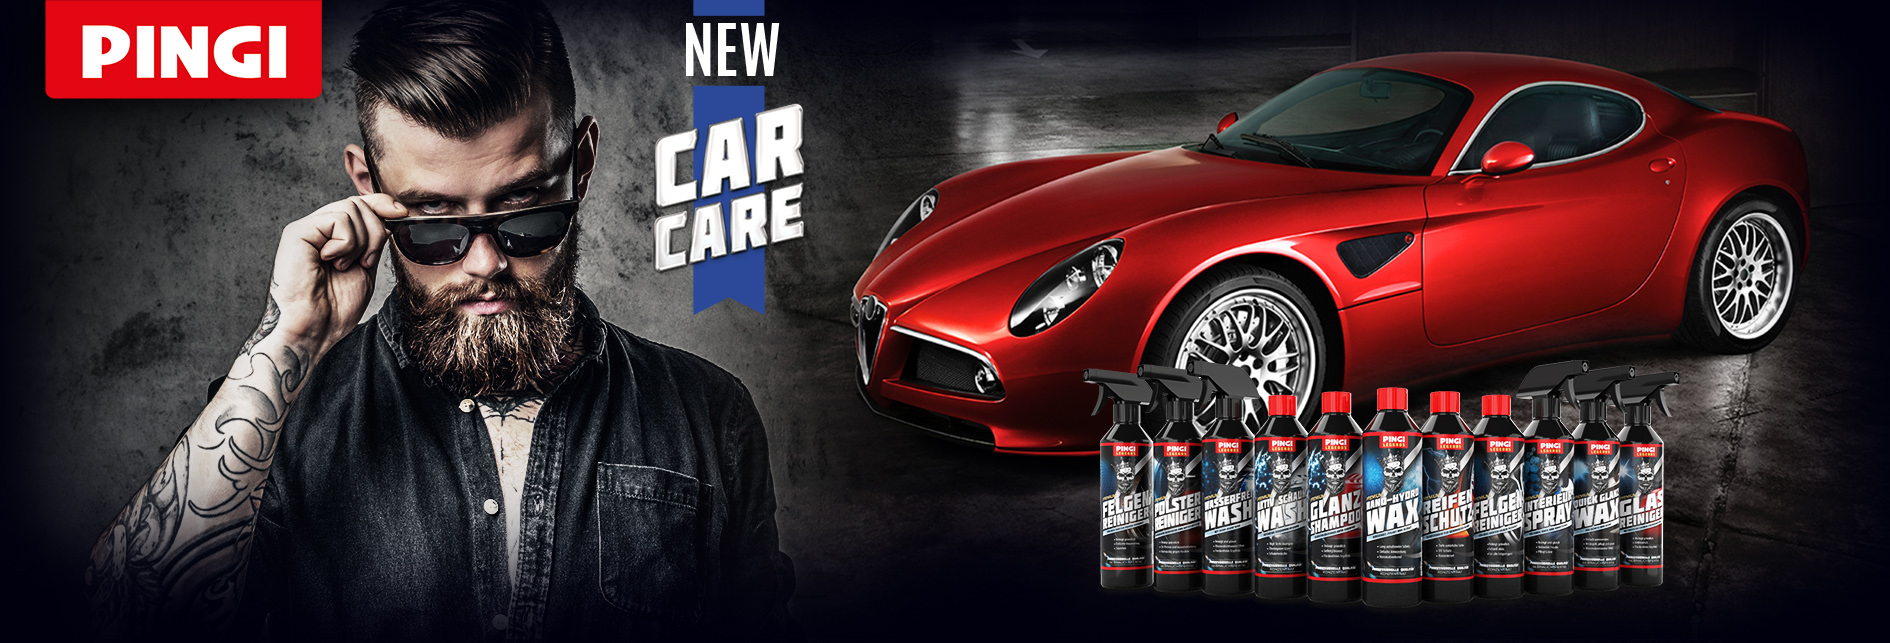 PINGI Banner Legends carcare